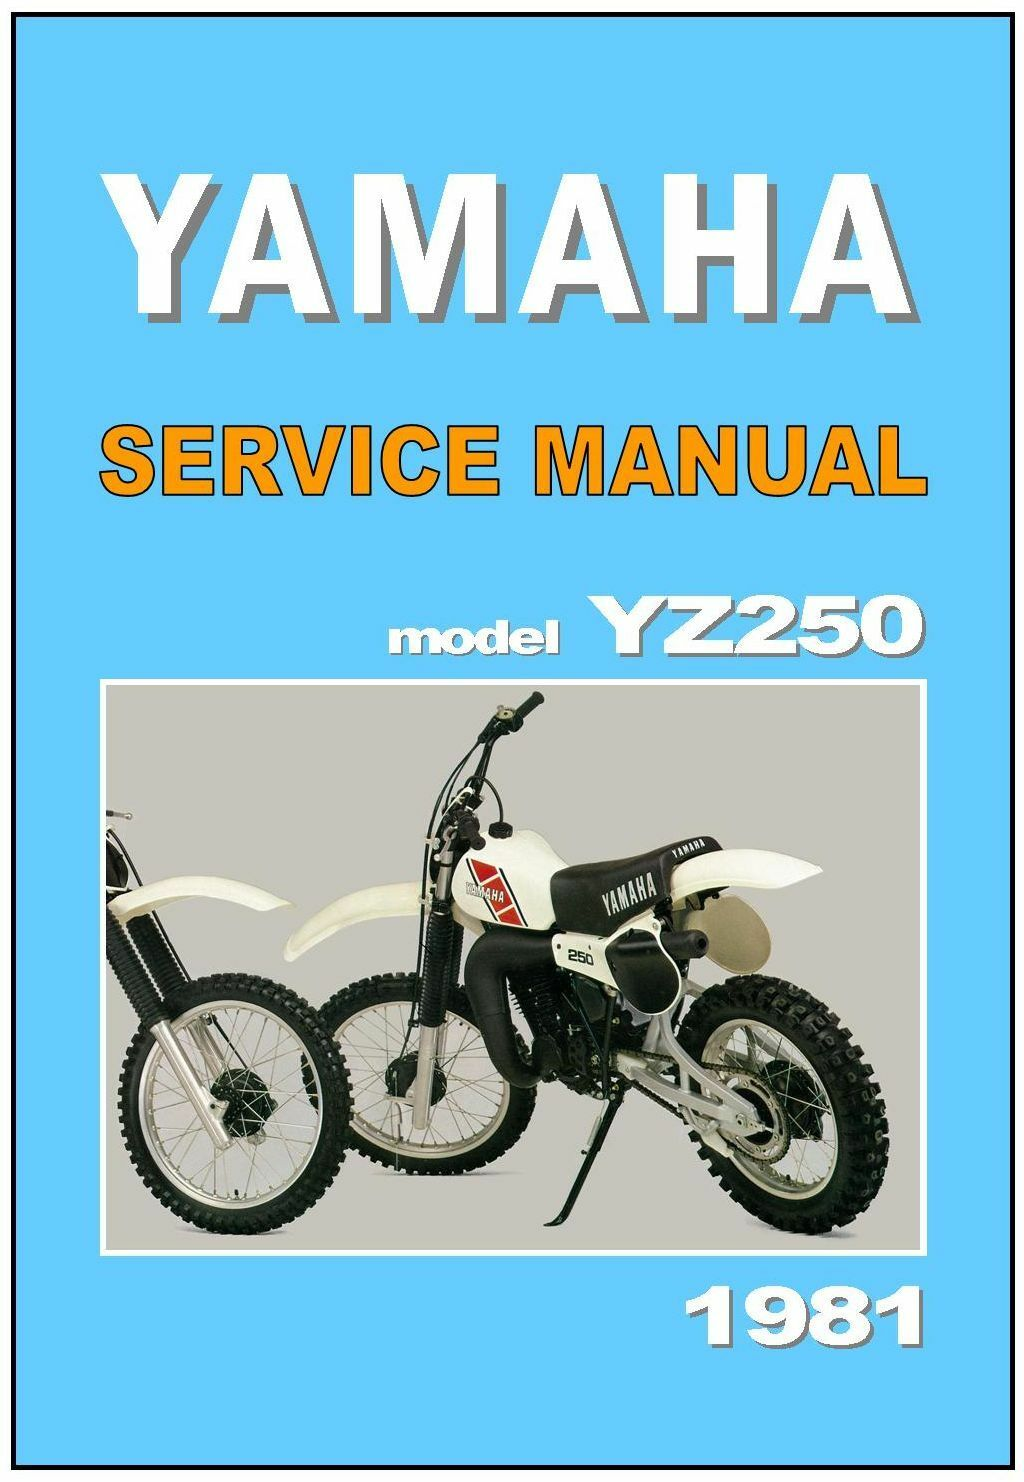 YAMAHA Workshop Manual YZ250 YZ250H VMX 1981 Service Repair Tuning  Maintenance 1 of 3 See More